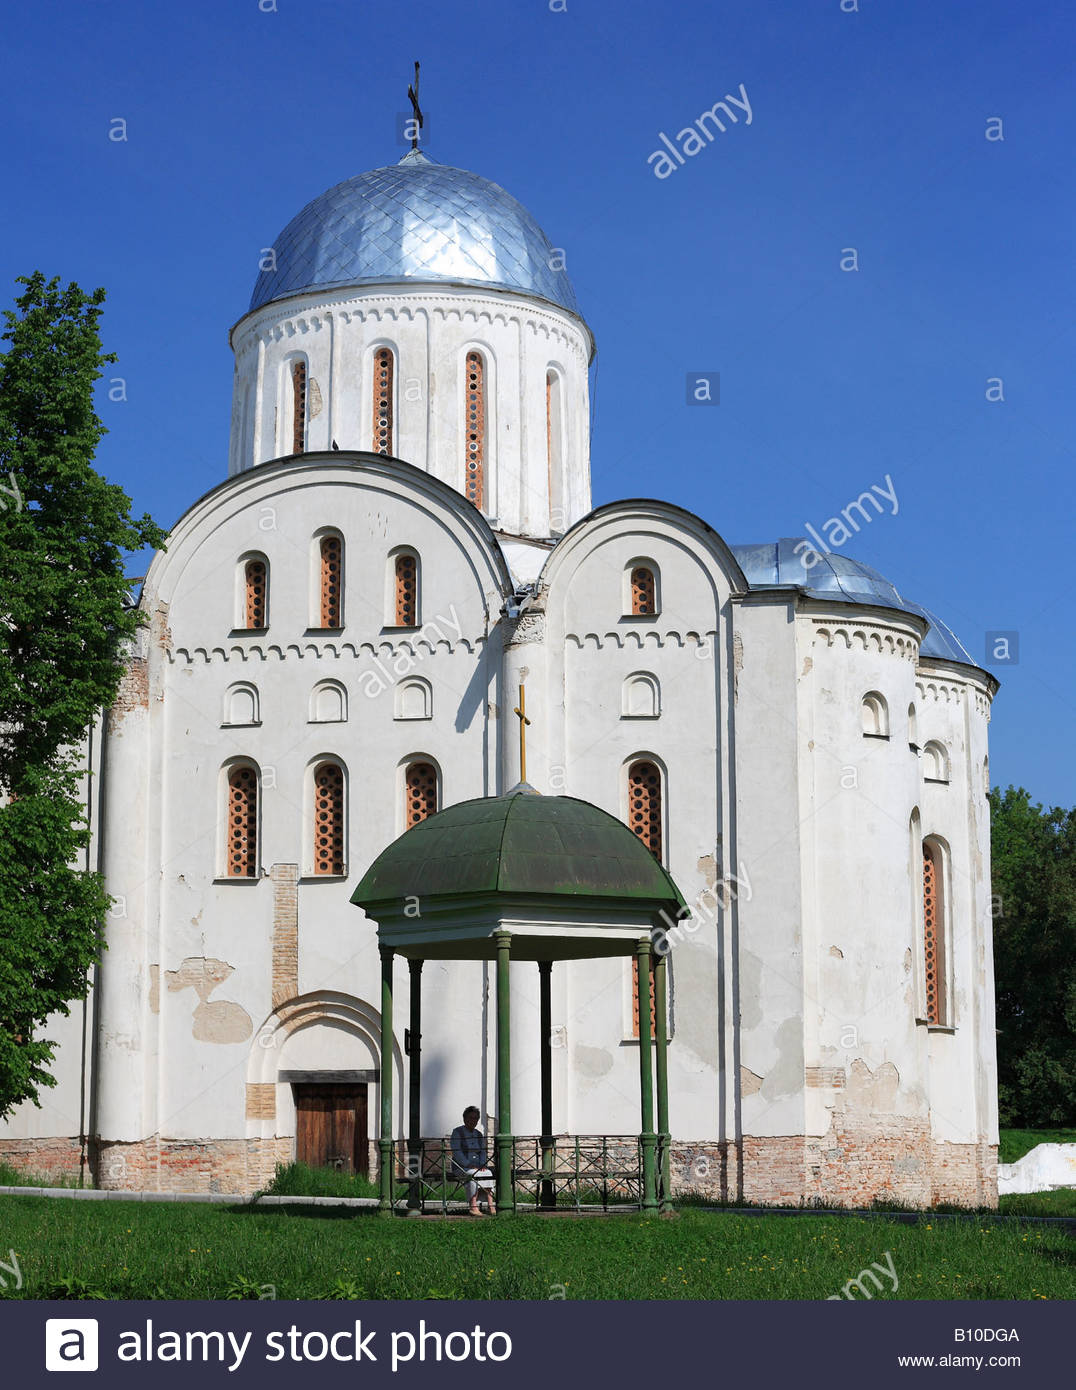 Cathedral of St. Boris and St. Gleb (1123), Chernigov, Ukraine - Stock Image